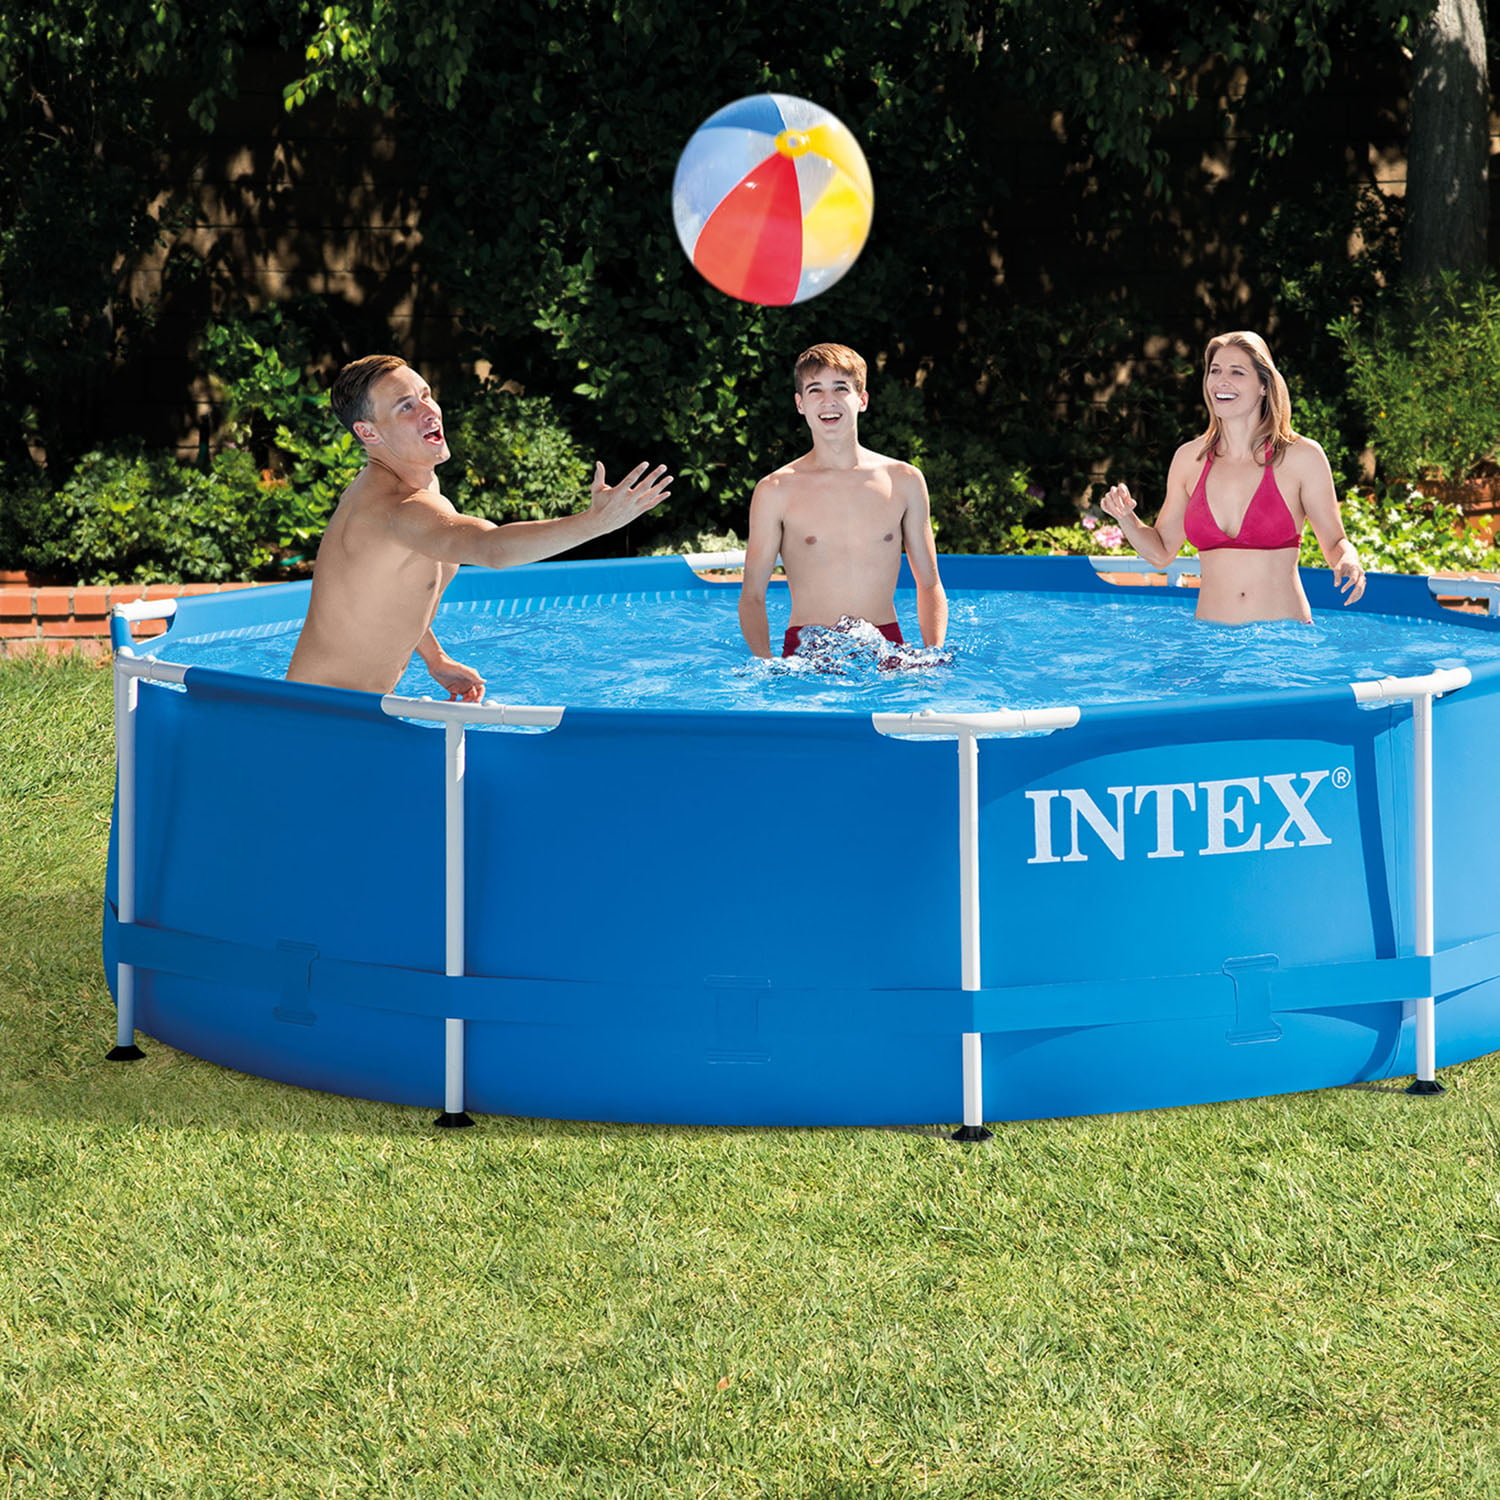 "Intex 10' x 30"" Metal Frame Above Ground Swimming Pool with Filter Pump by Intex"